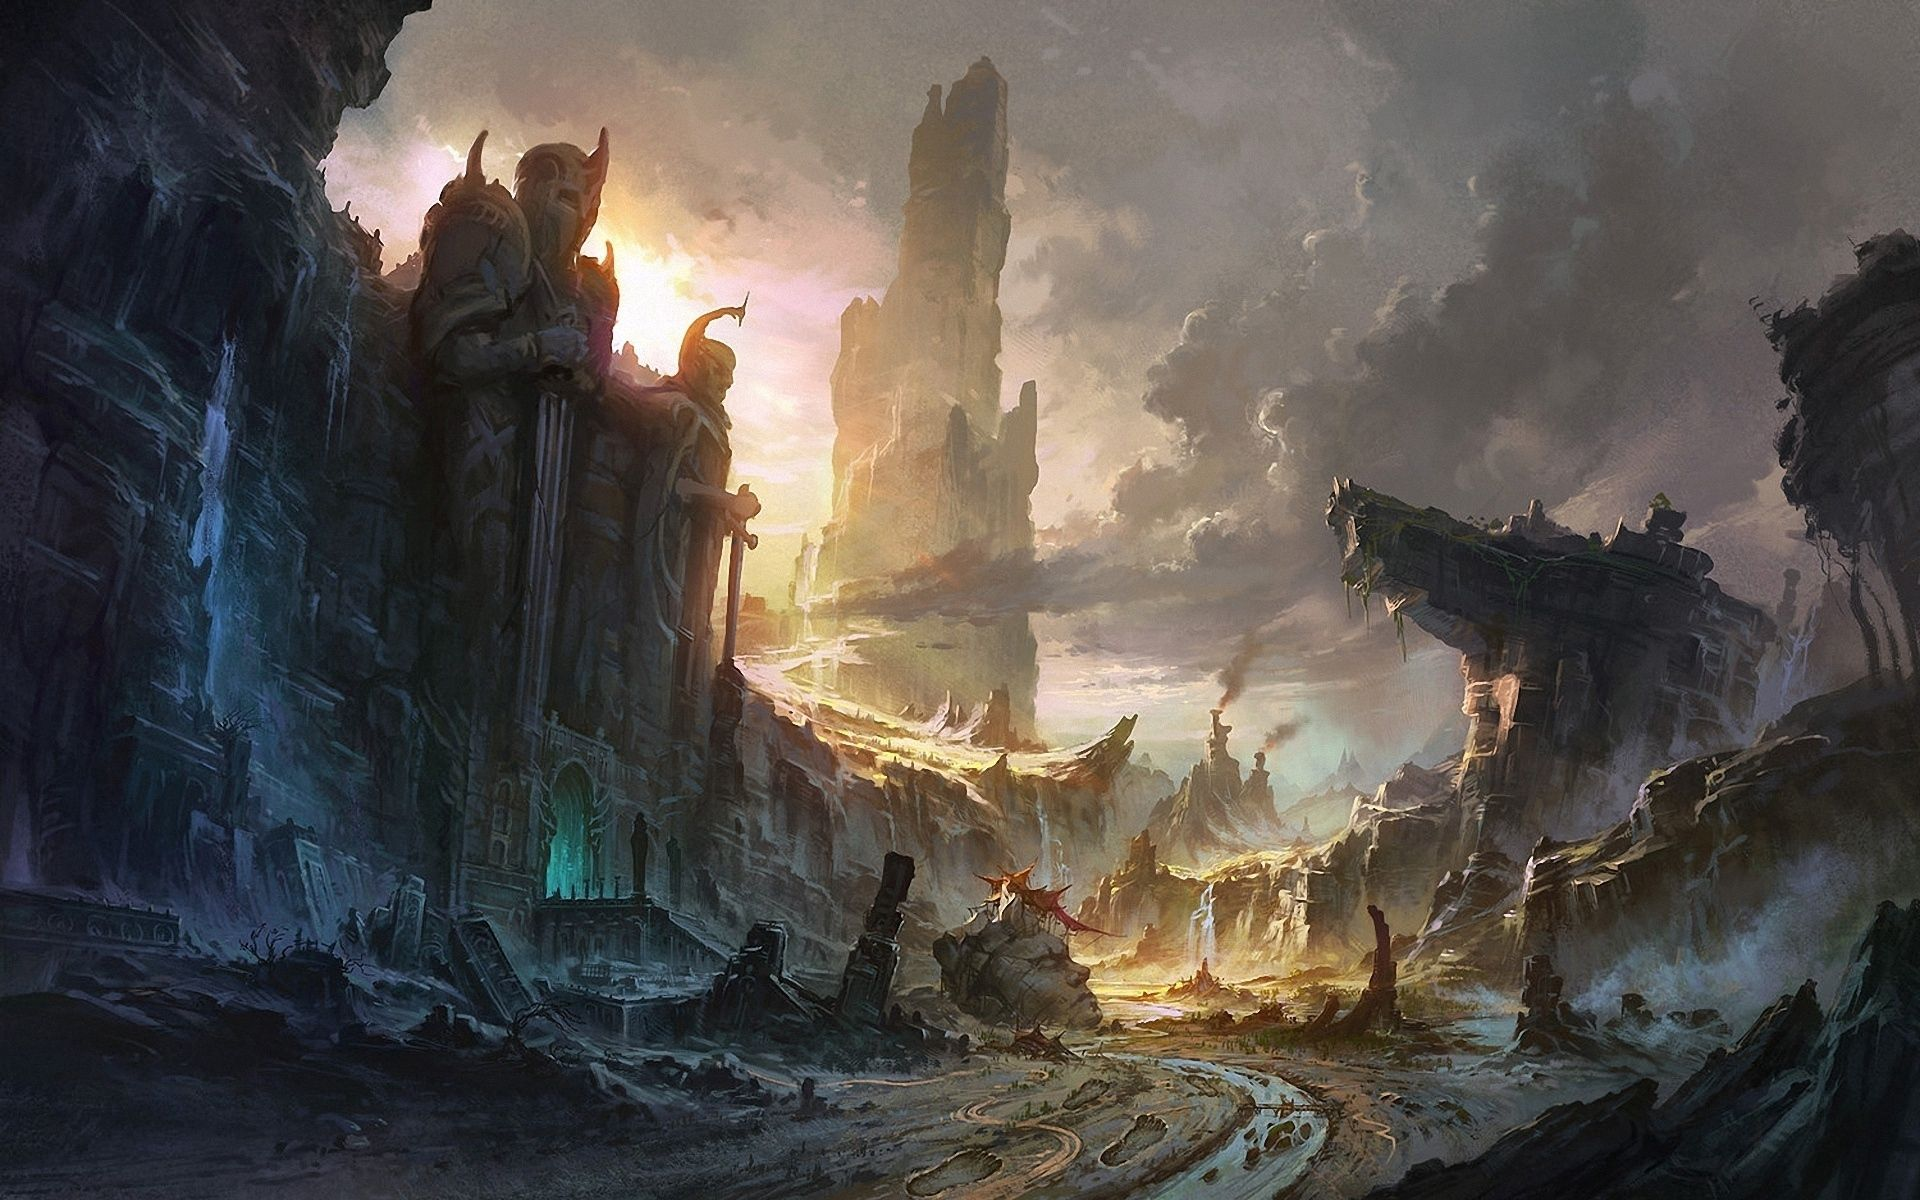 67569 download wallpaper Fantasy, Rocks, Destruction, City, Waterfall, Landscape screensavers and pictures for free